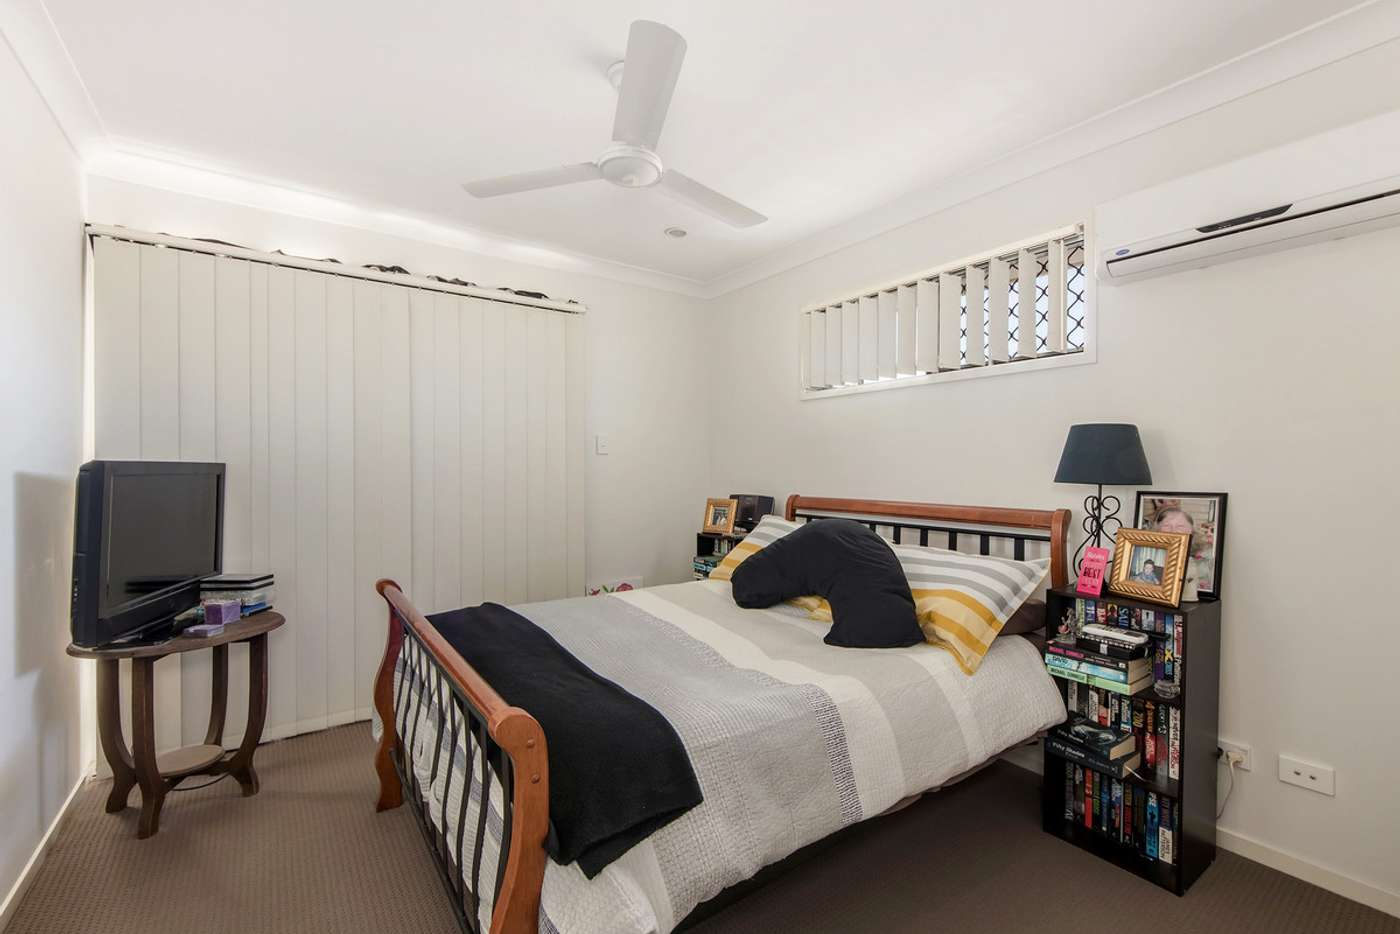 Sixth view of Homely house listing, 37 Pendragon Street, Raceview QLD 4305